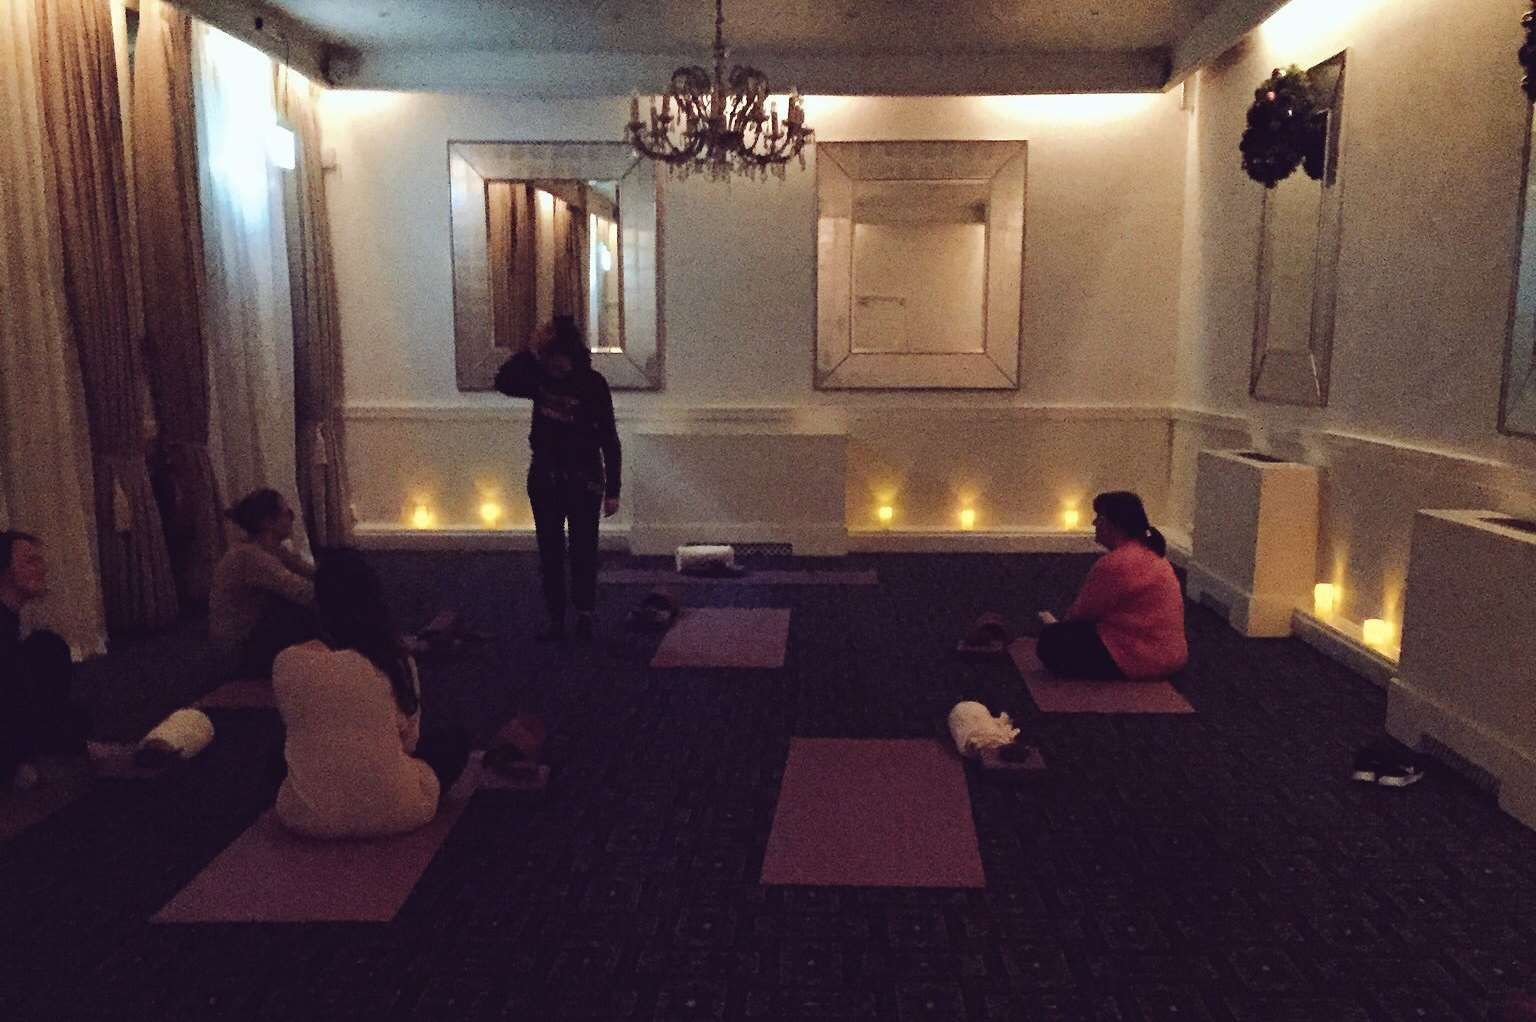 The yoga activities in the former coach house. Credit: Molly Mileham-Chappell